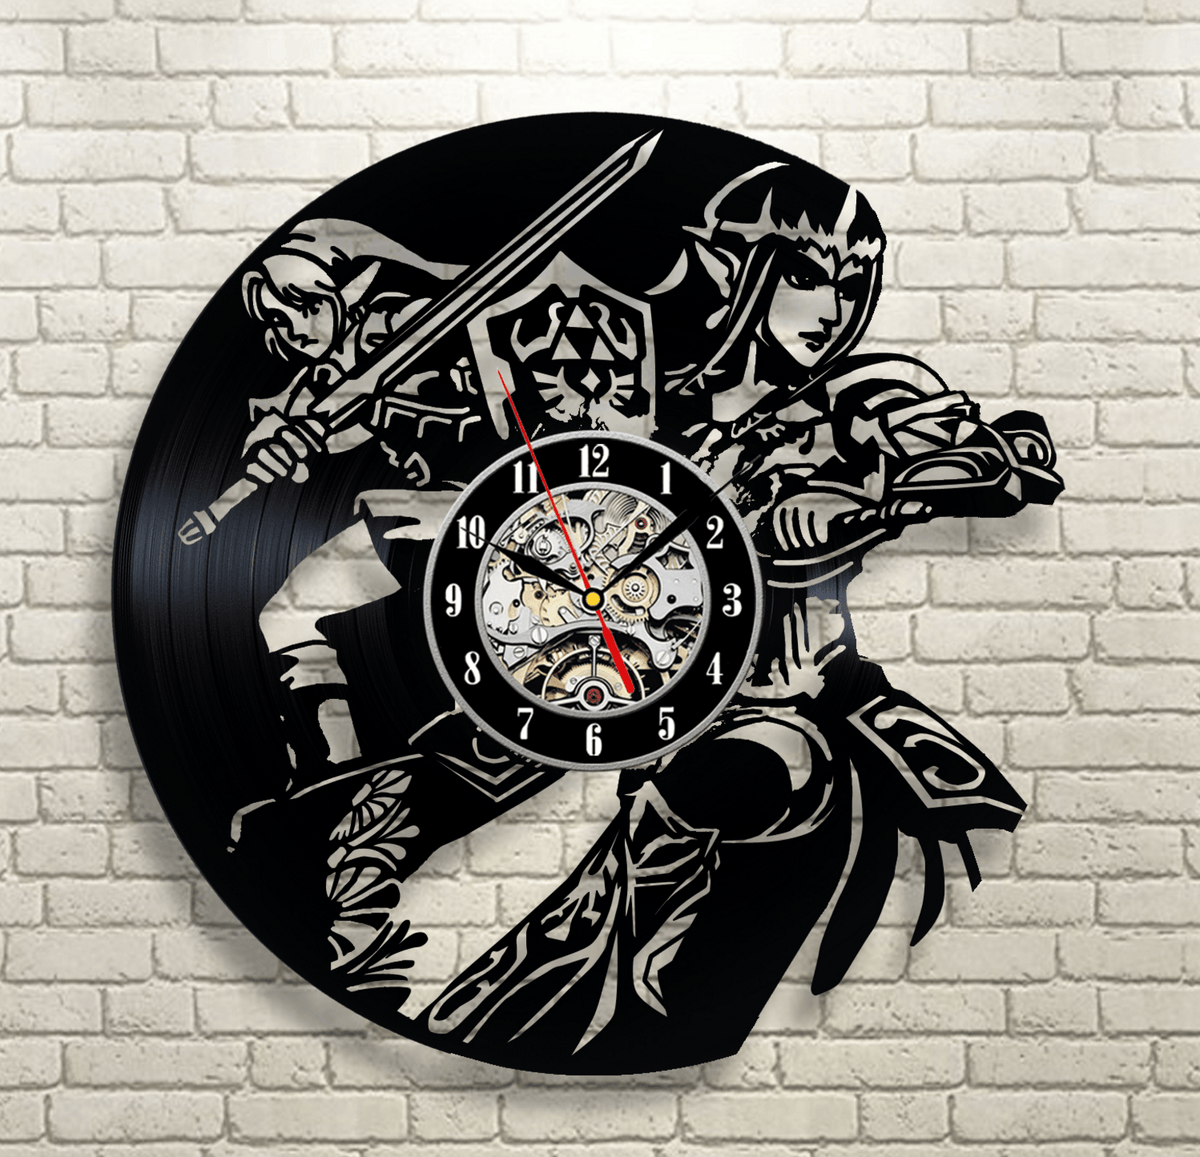 Legend of Zelda Vinyl Record Wall Clock